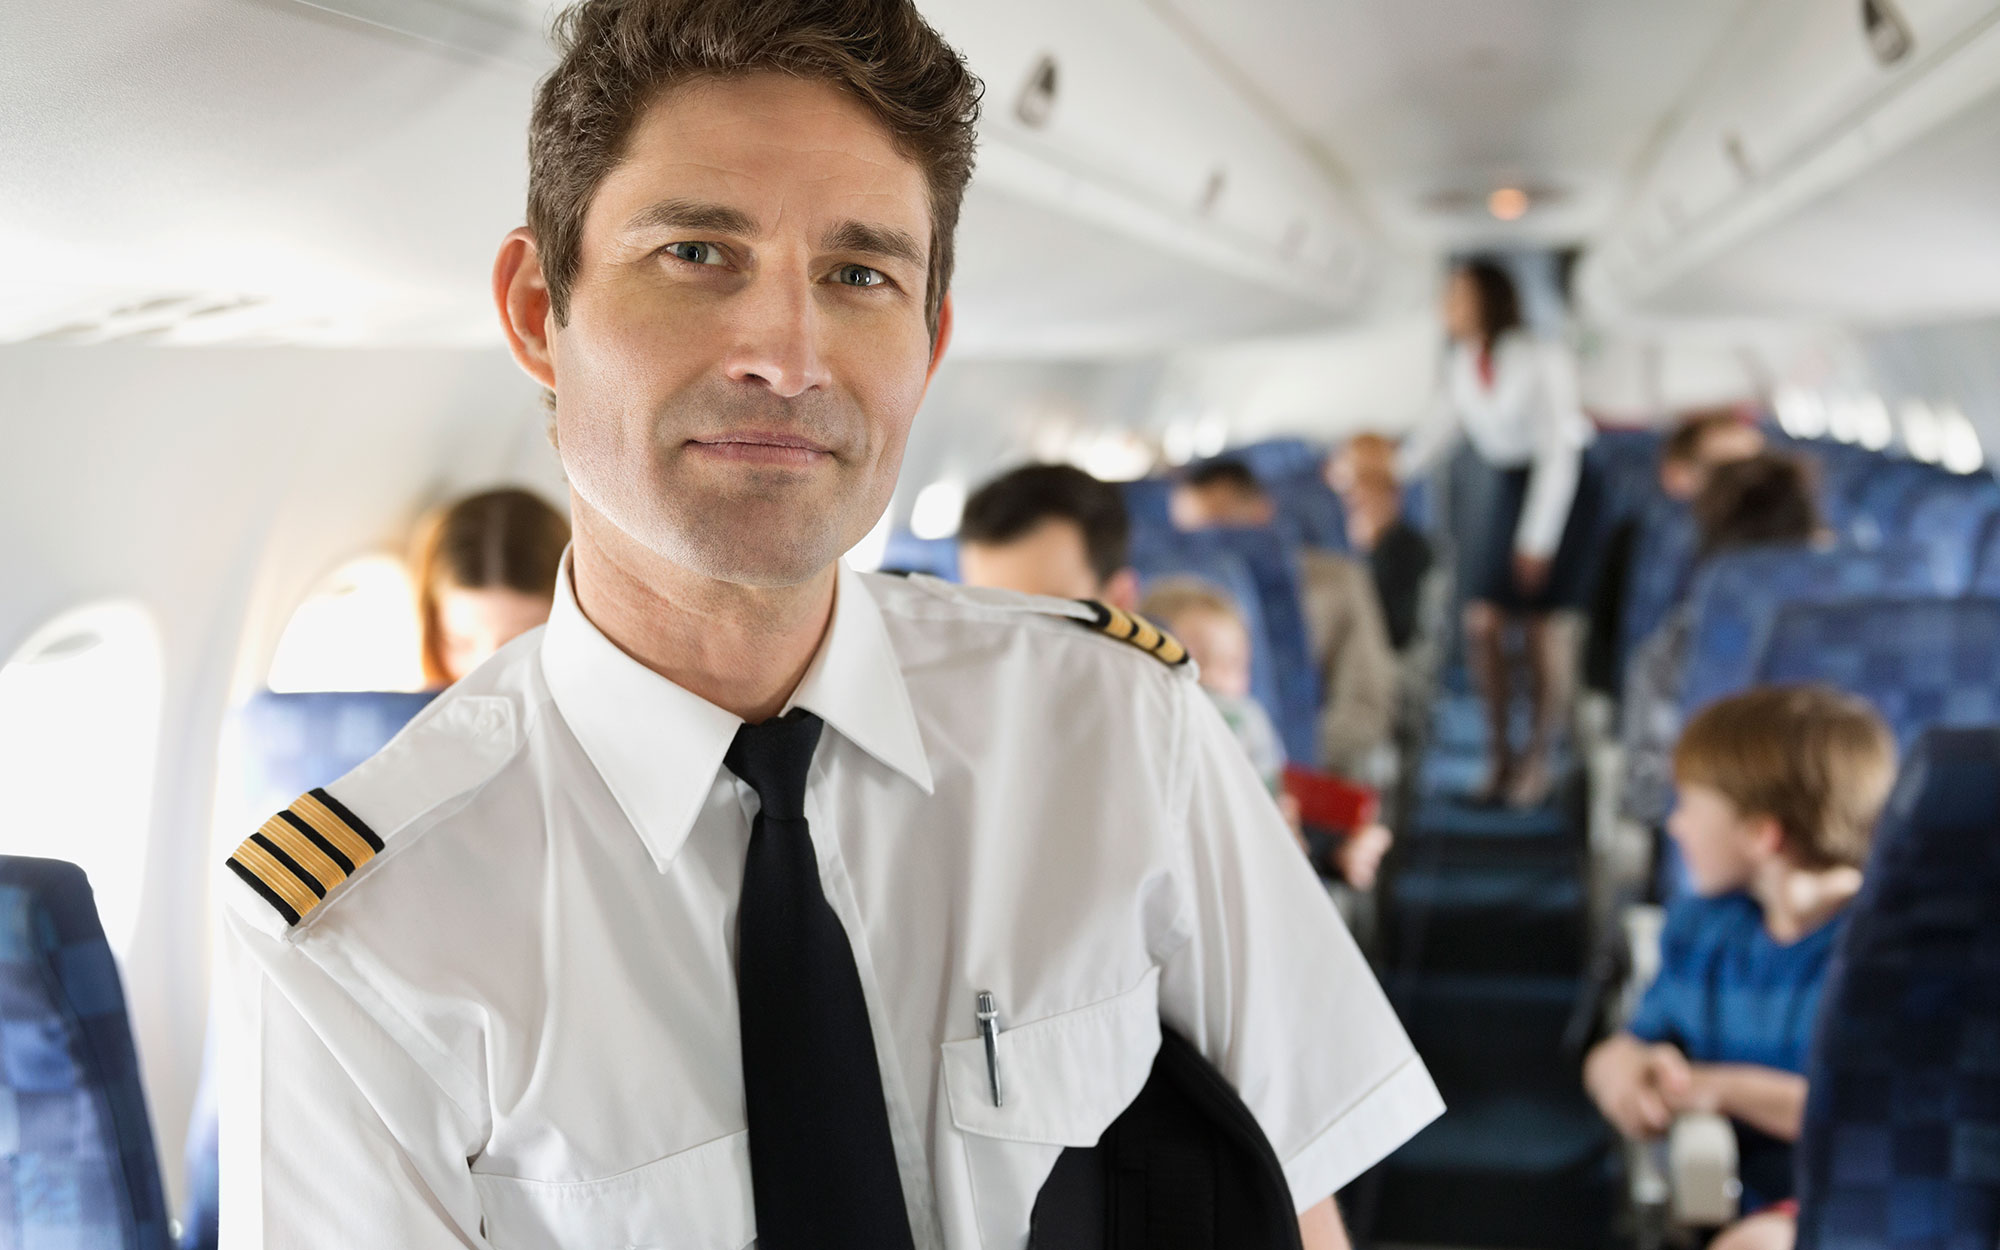 Expert Reveals Why Pilots Have the Sexiest Job